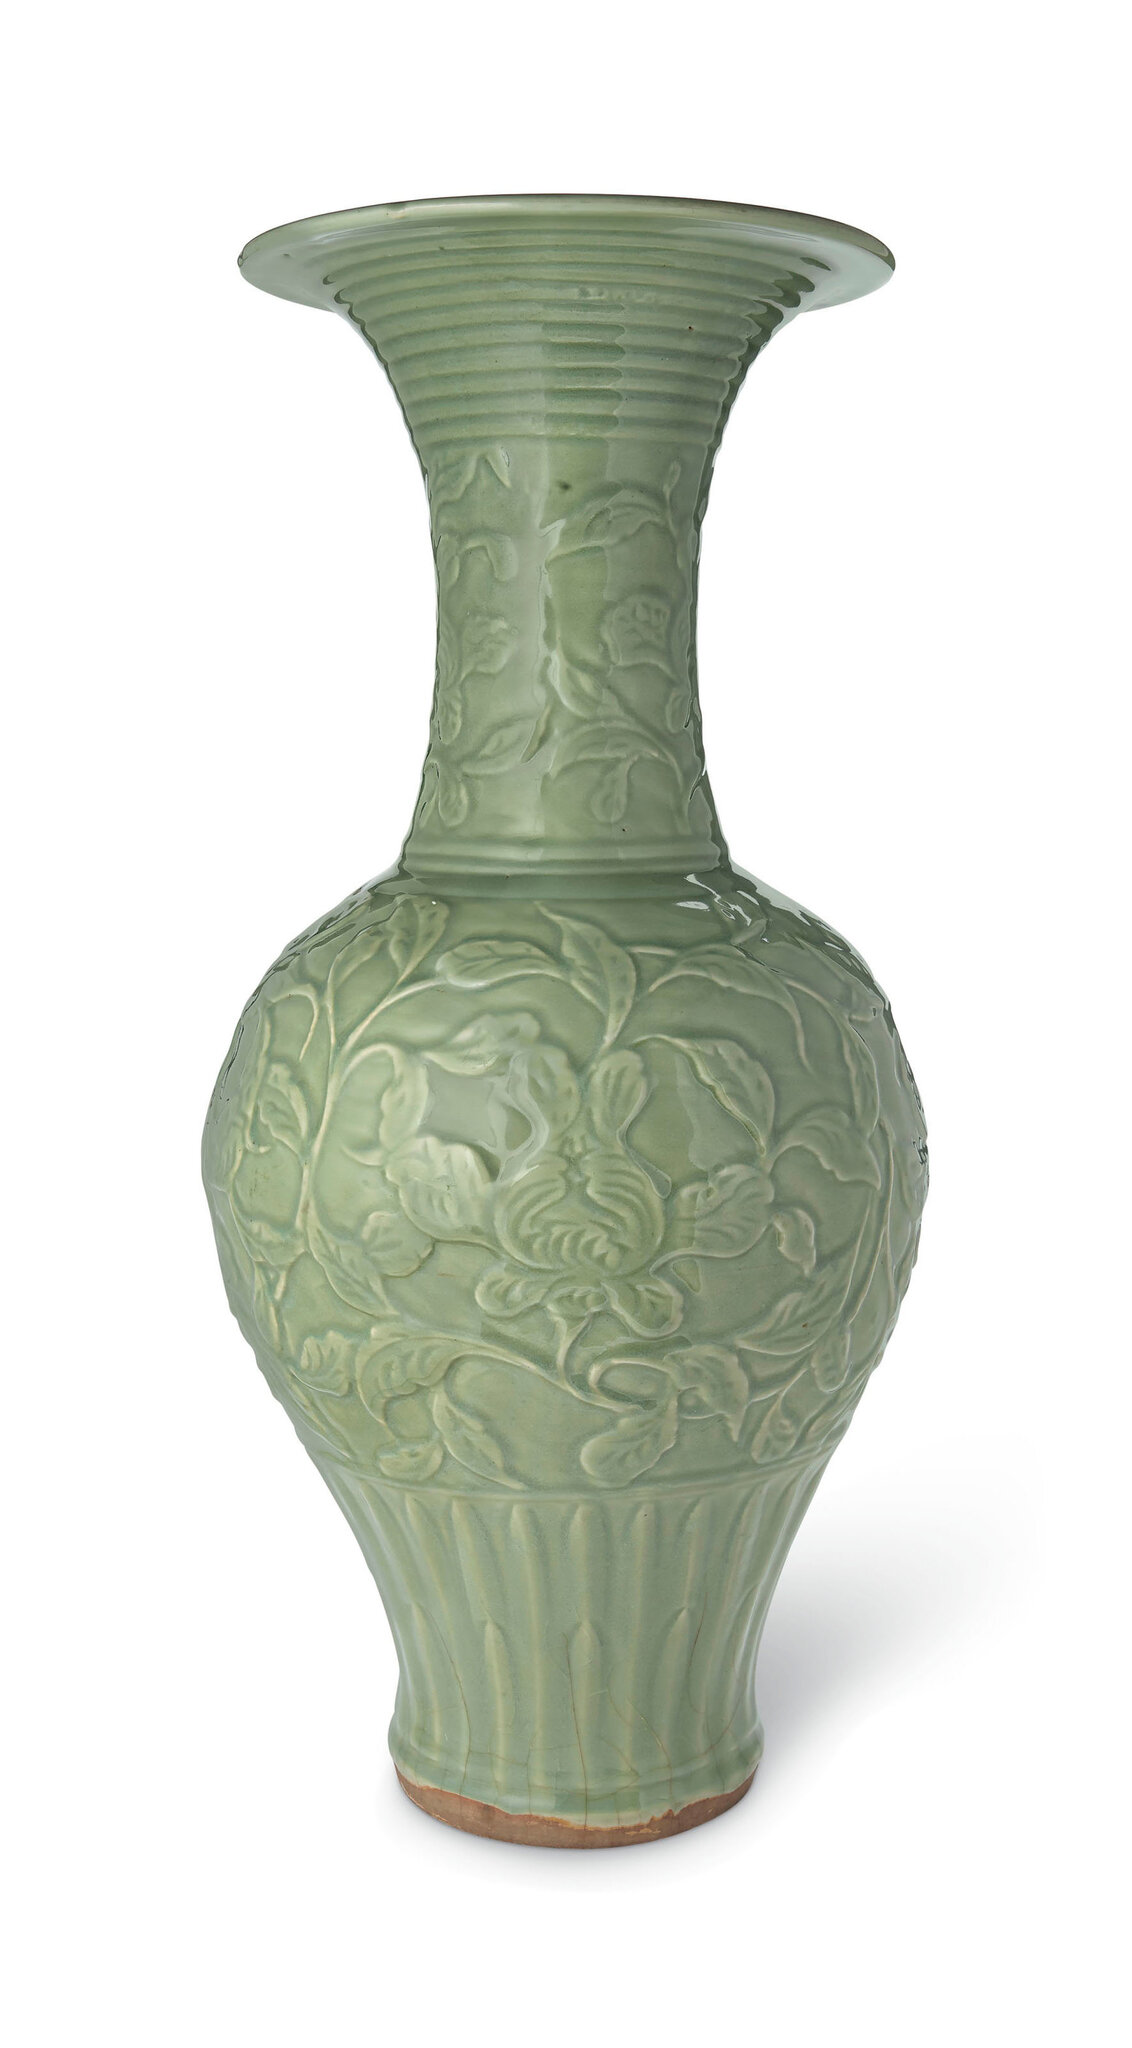 A magnificient and very rare large Longquan celadon 'phoenix tail' vase, Yuan dynasty (1279-1368)